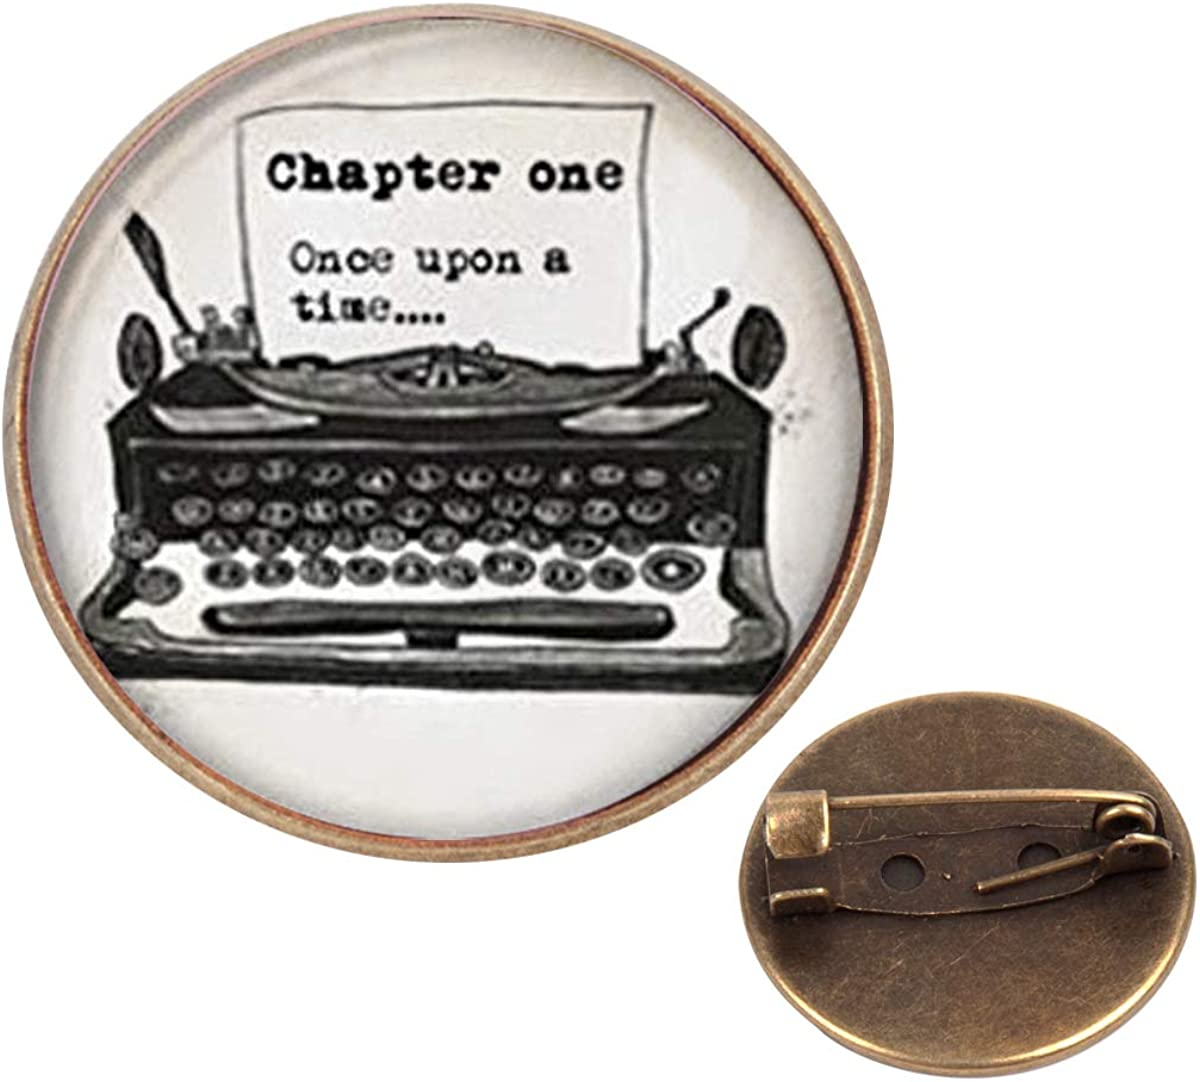 Pinback Buttons Badges Pins Old Typewriter Vintage Writer Lapel Pin Brooch Clip Trendy Accessory Jacket T-Shirt Bag Hat Shoe